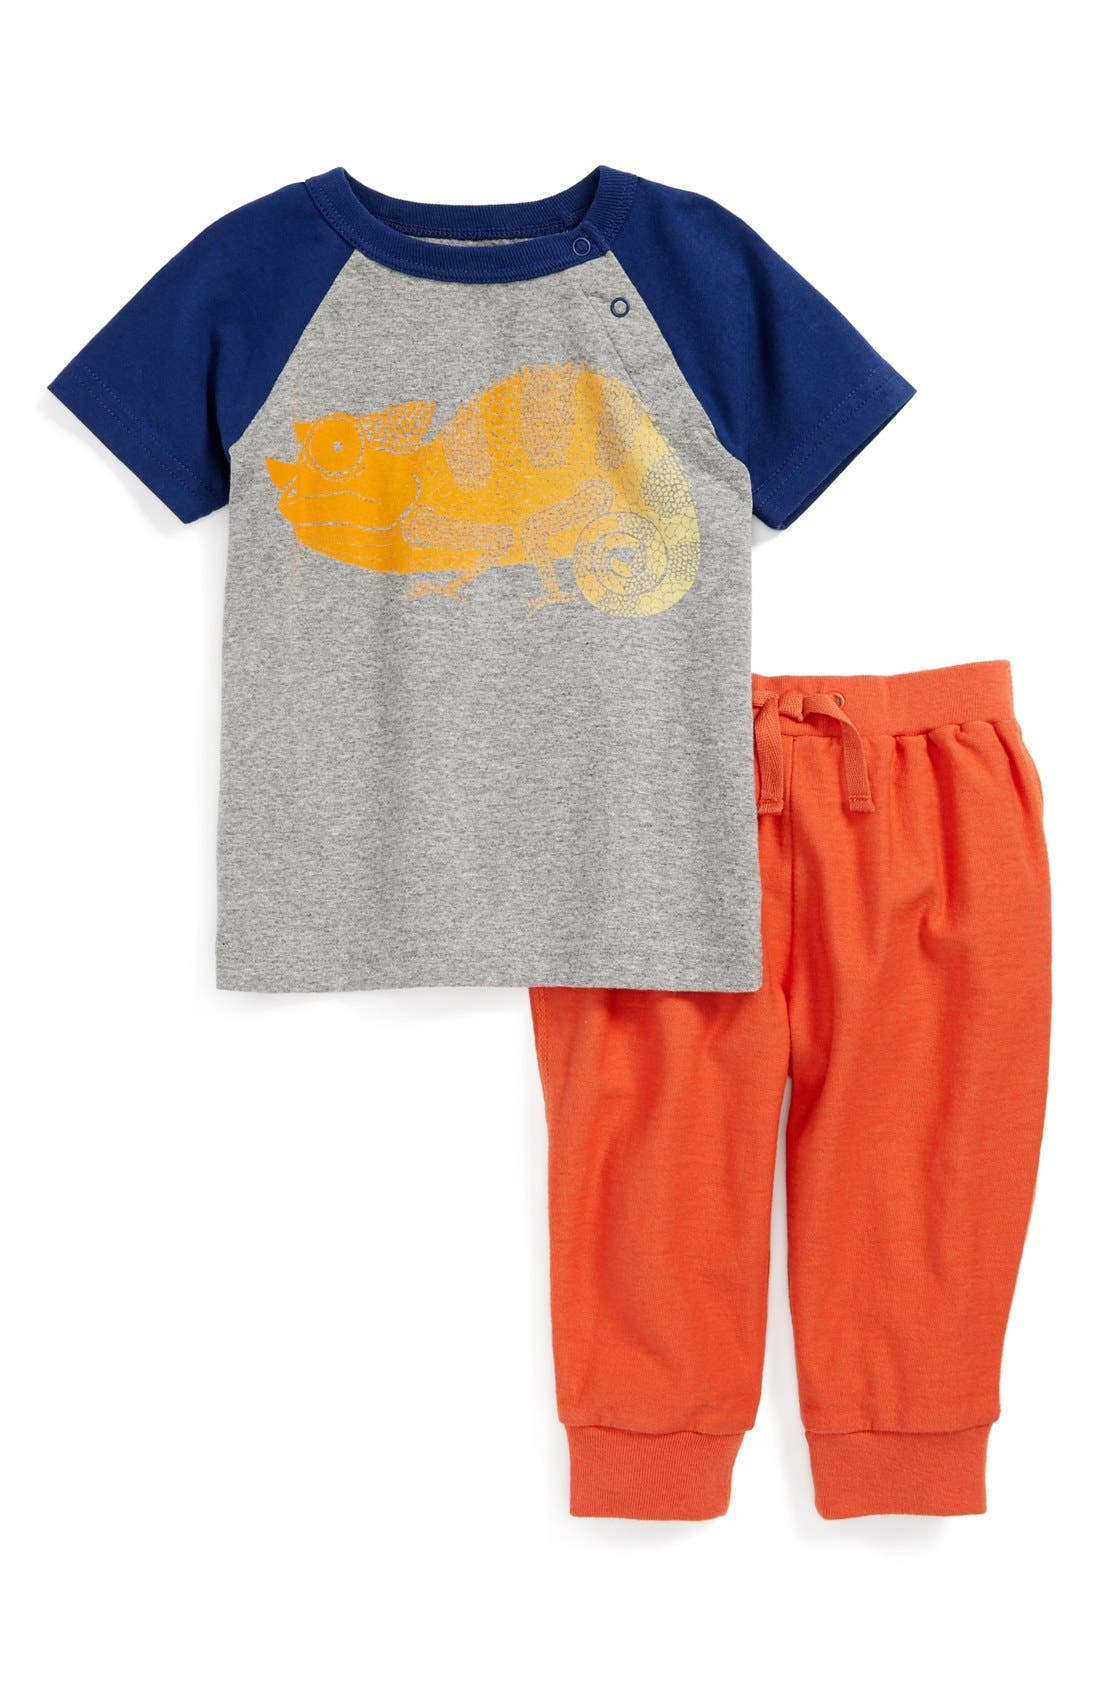 Main Image - Tea Collection 'Chameleon' T-Shirt & Pants (Baby Boys)